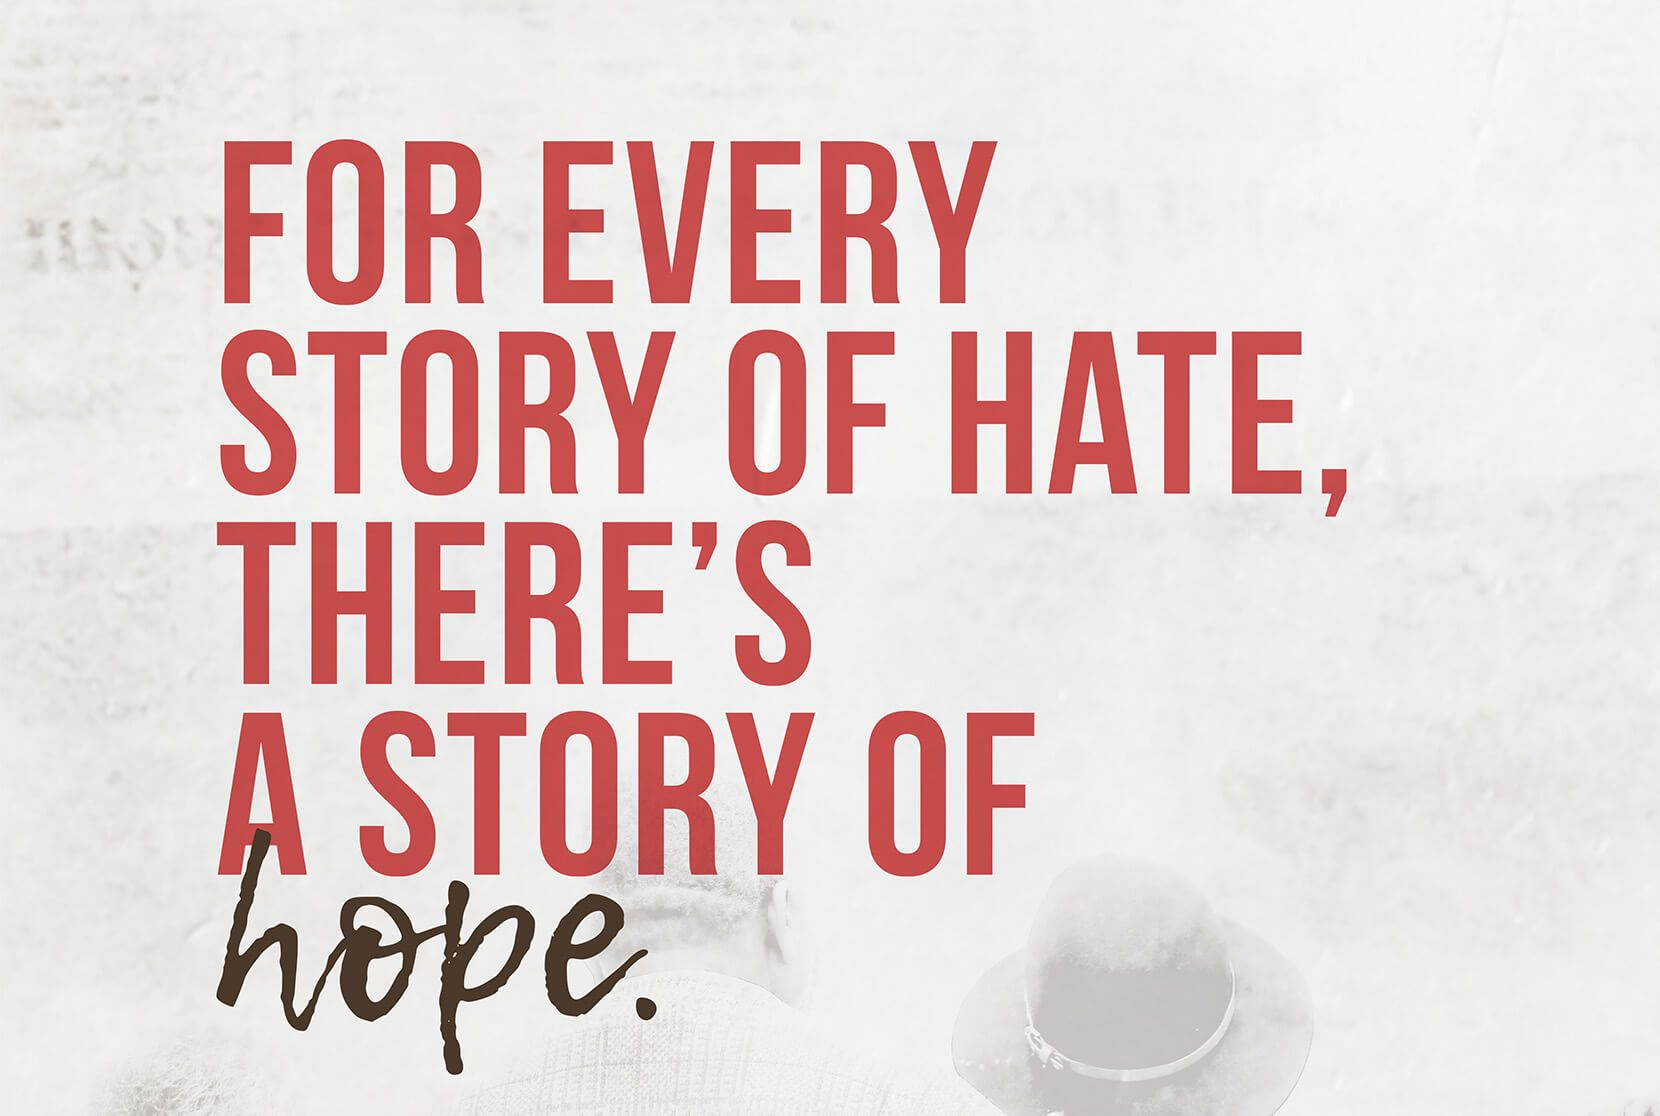 Poster with red text on a white background. Text reads 'For every story of hate, there's a story of hope.'